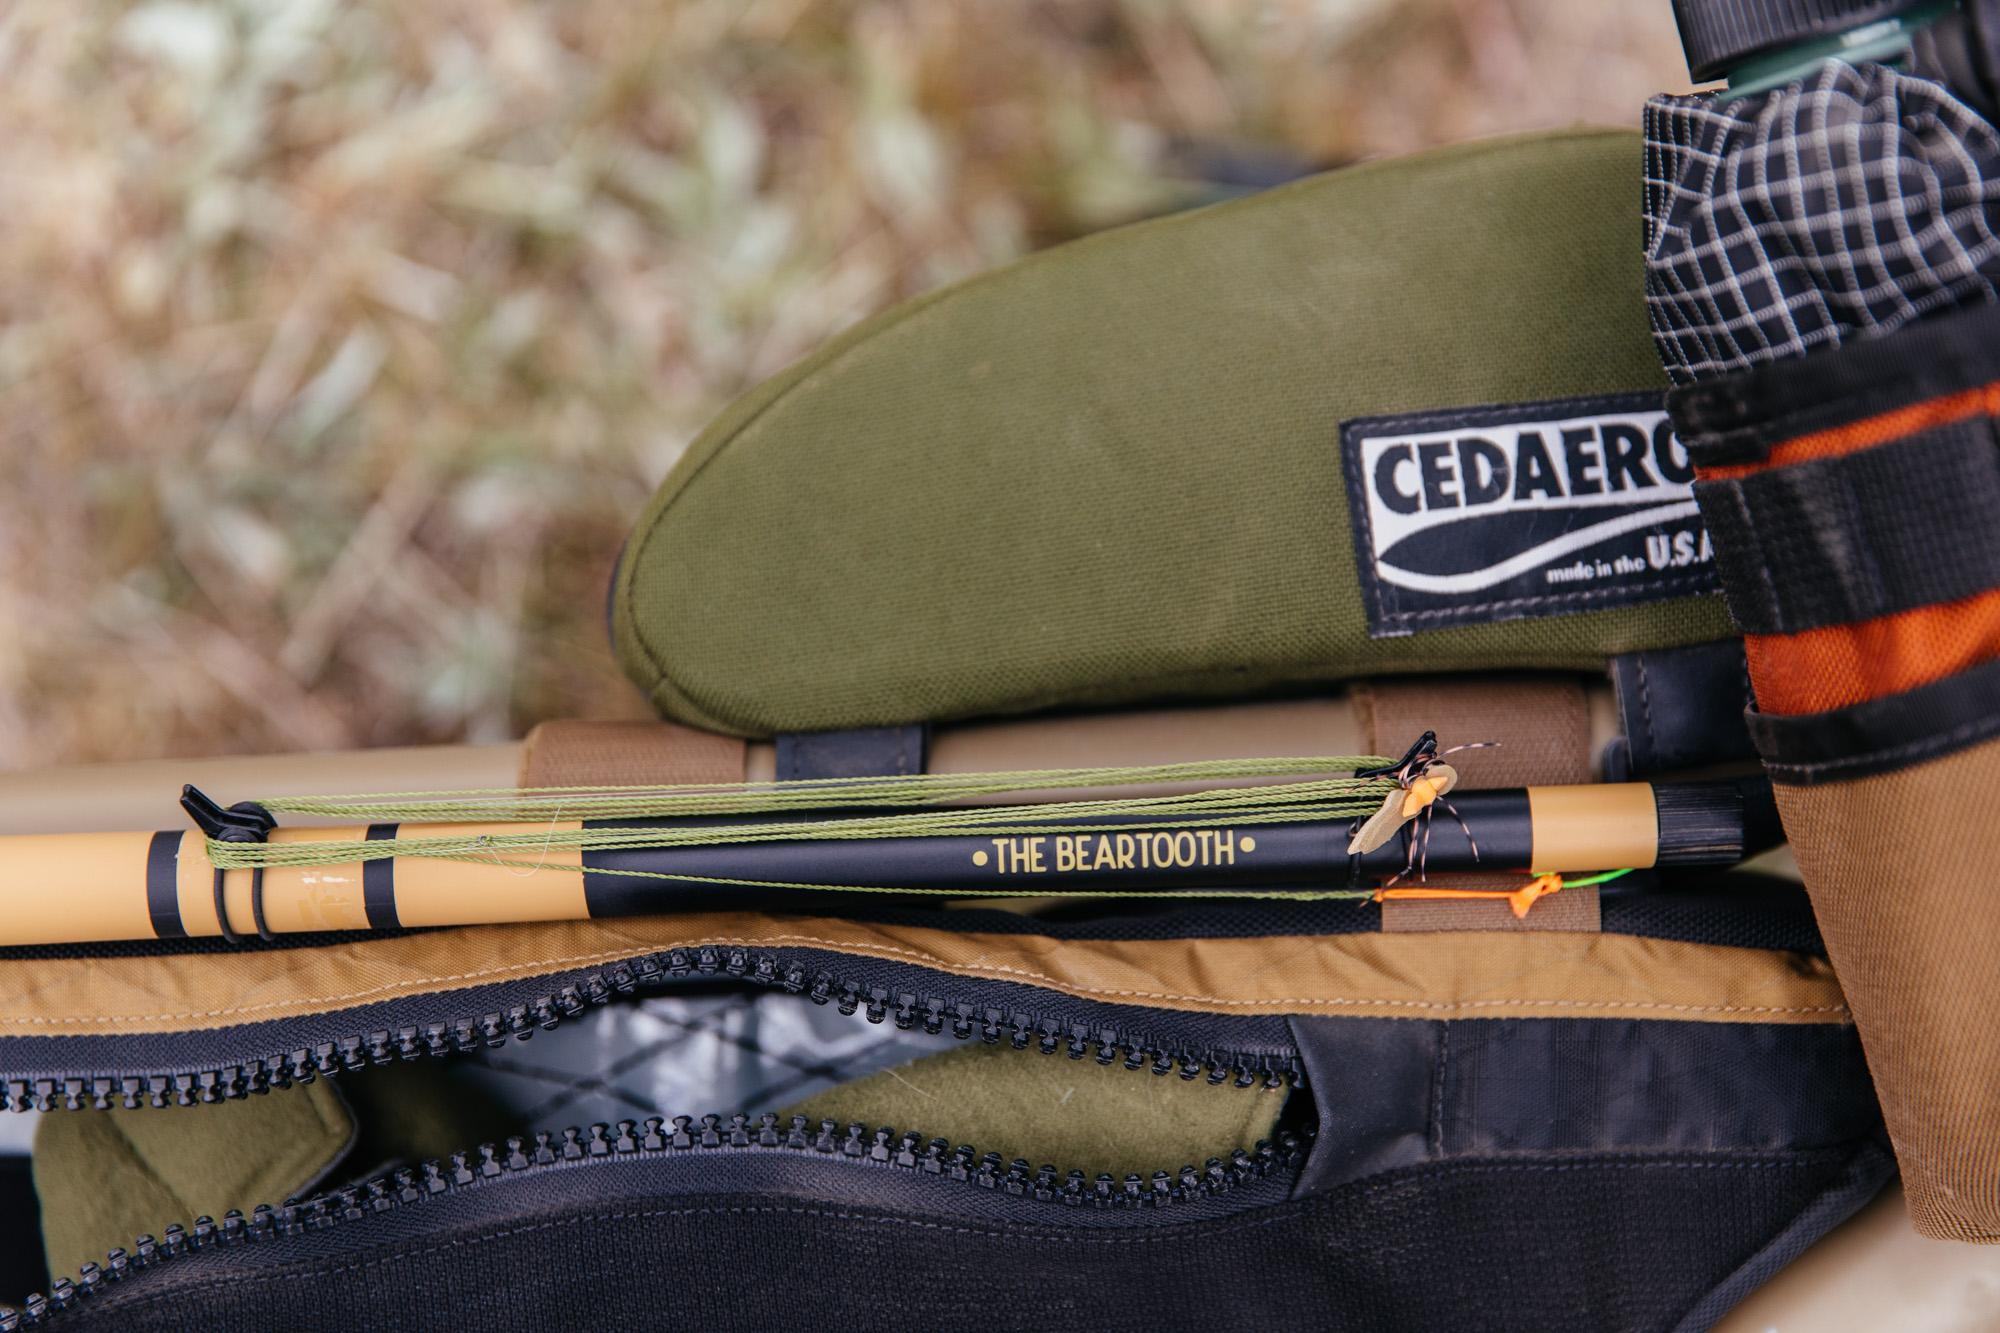 Tenkara Rod Co Beartooth is my rod of choice for bike fishing